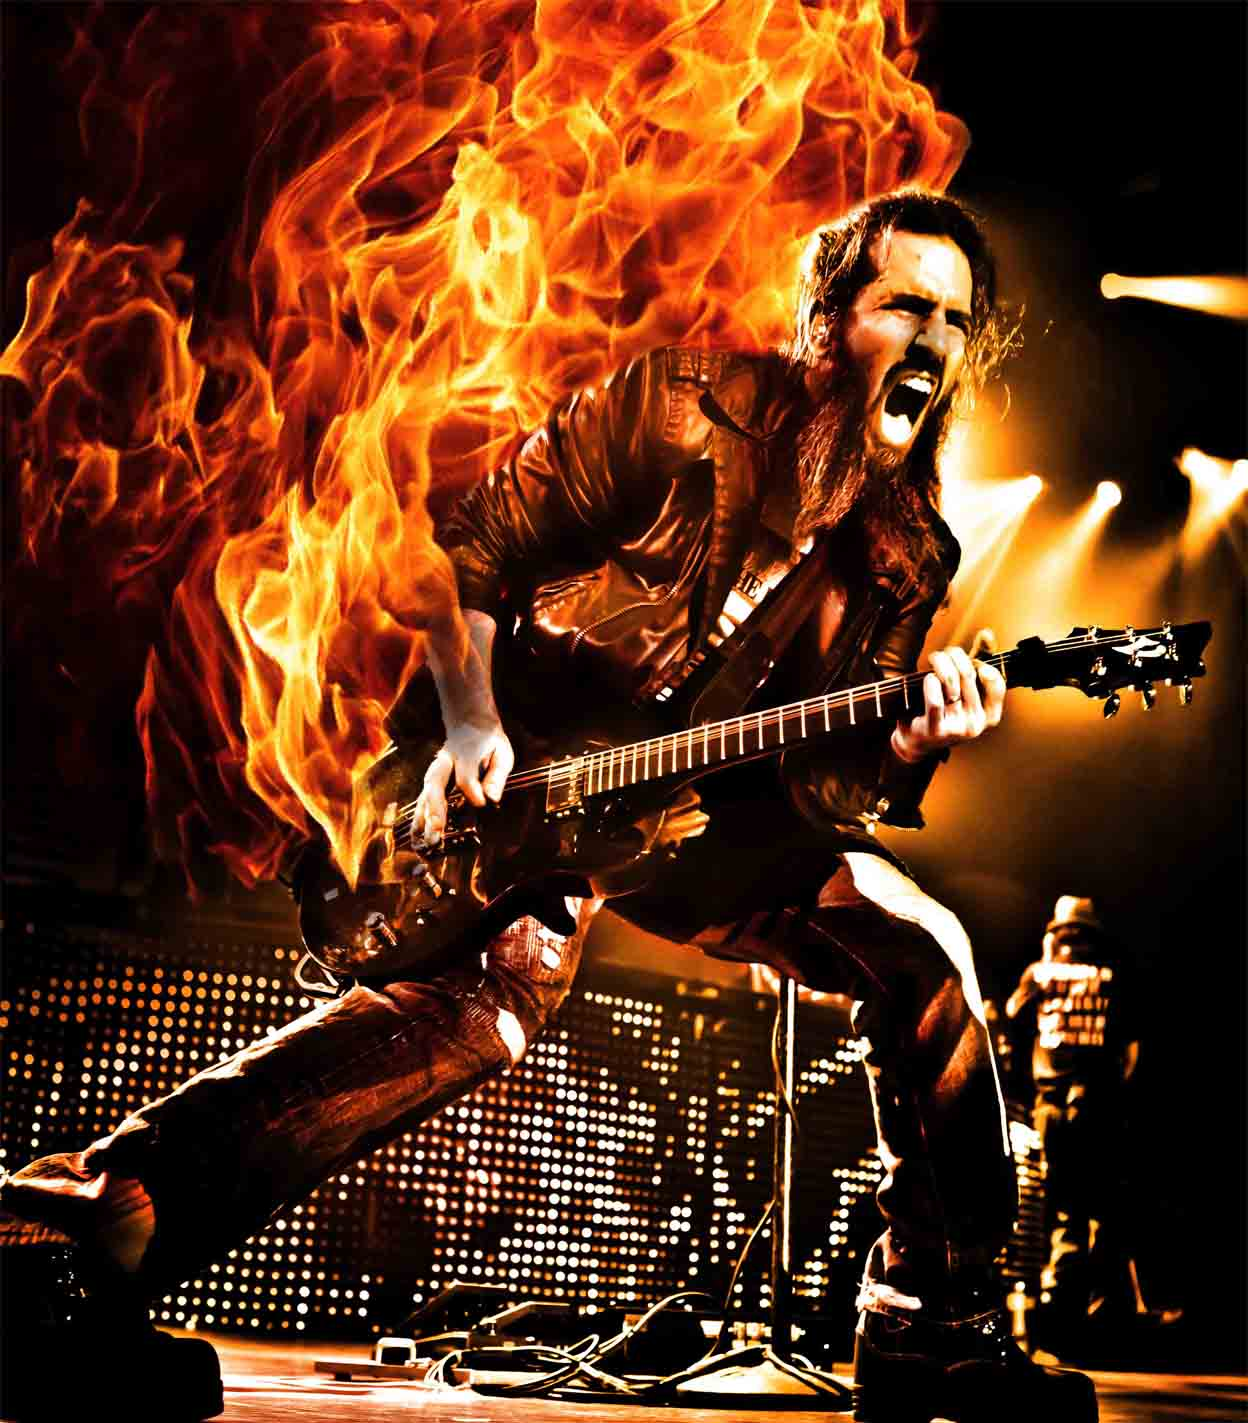 Interview with Guns N' Roses Guitarist Ron 'Bumblefoot' Thal